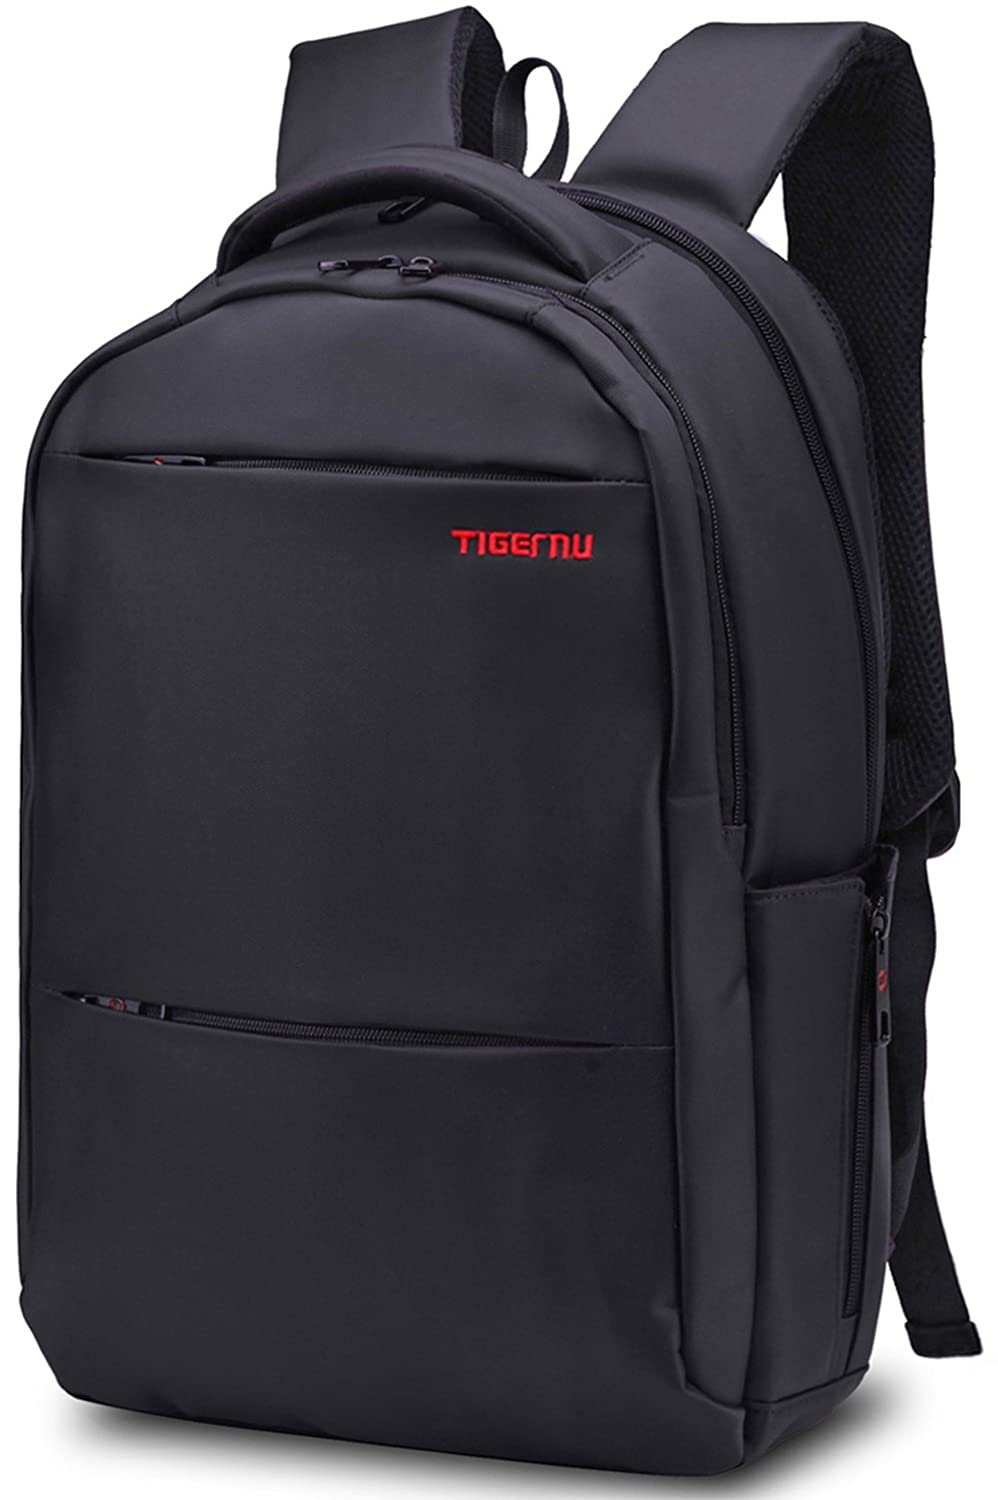 a8446cc4c188 Amazon.com  LAPACKER Durable XL Extra Large Big Laptop Backpack for Men 17.3  18.4 inch Traveling Computer Backpacks for Business (Except Gaming Laptop)   ...